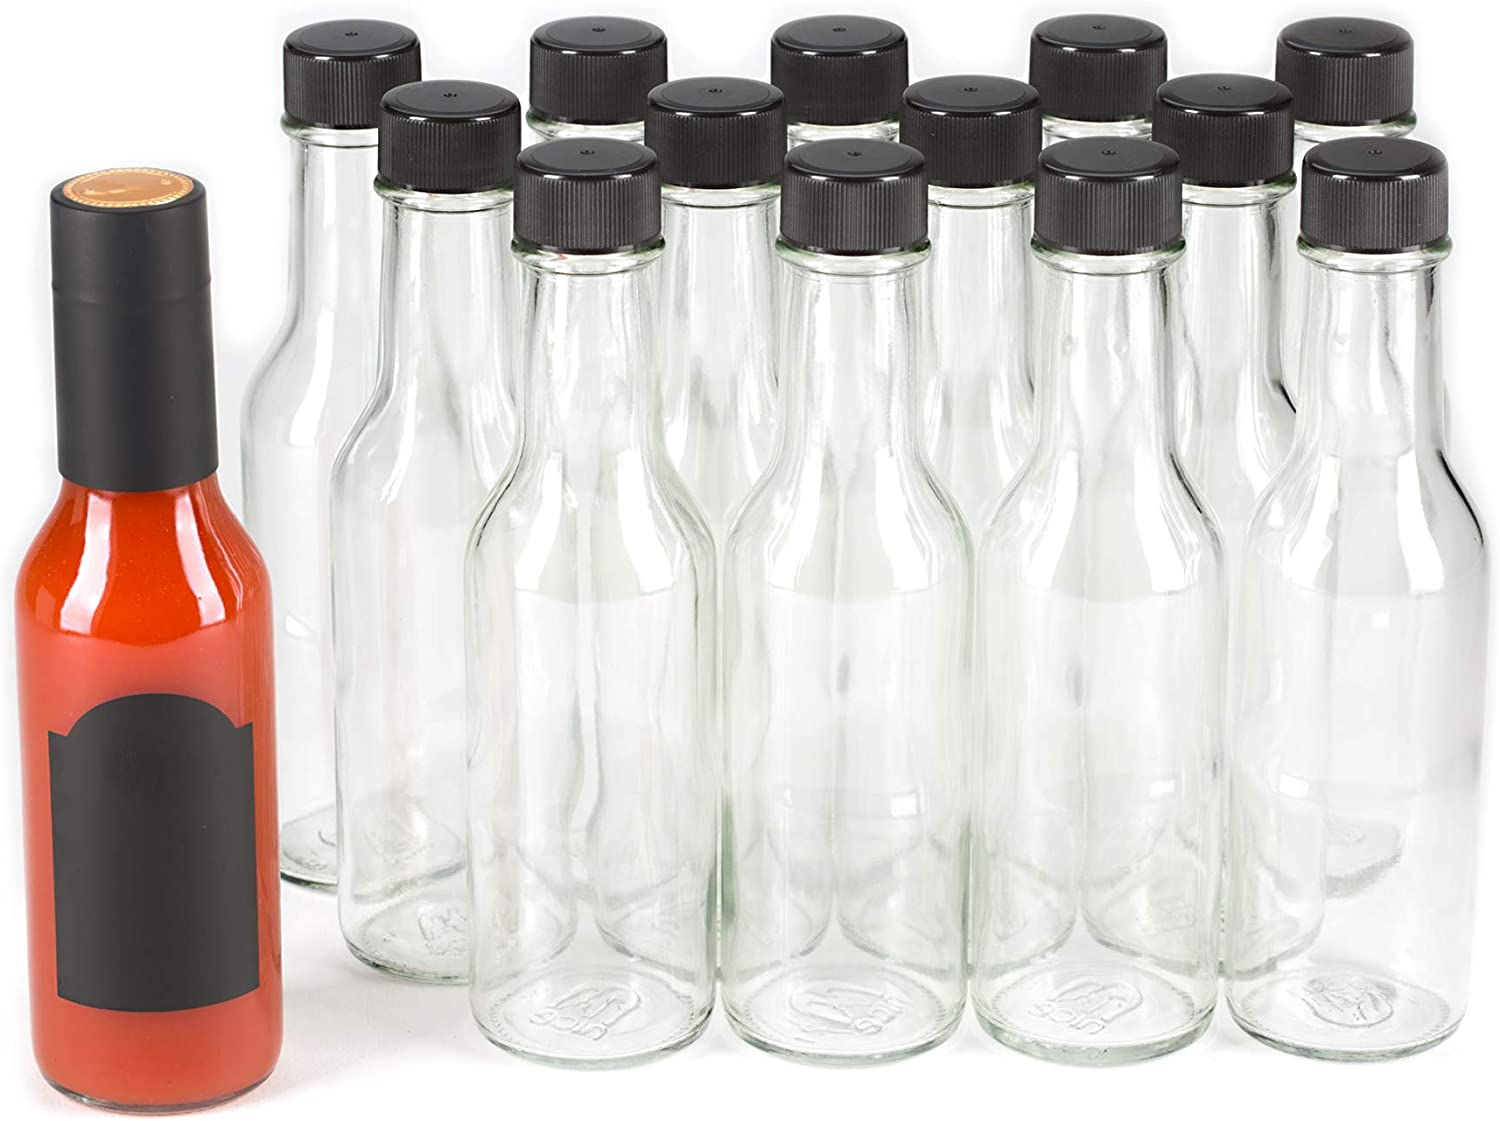 and Lids- Pack of 14 Bottles 5 Oz with Black Caps and Inserts with Shrink Sleeve Premium Vials Hot Sauce Woozy Bottles